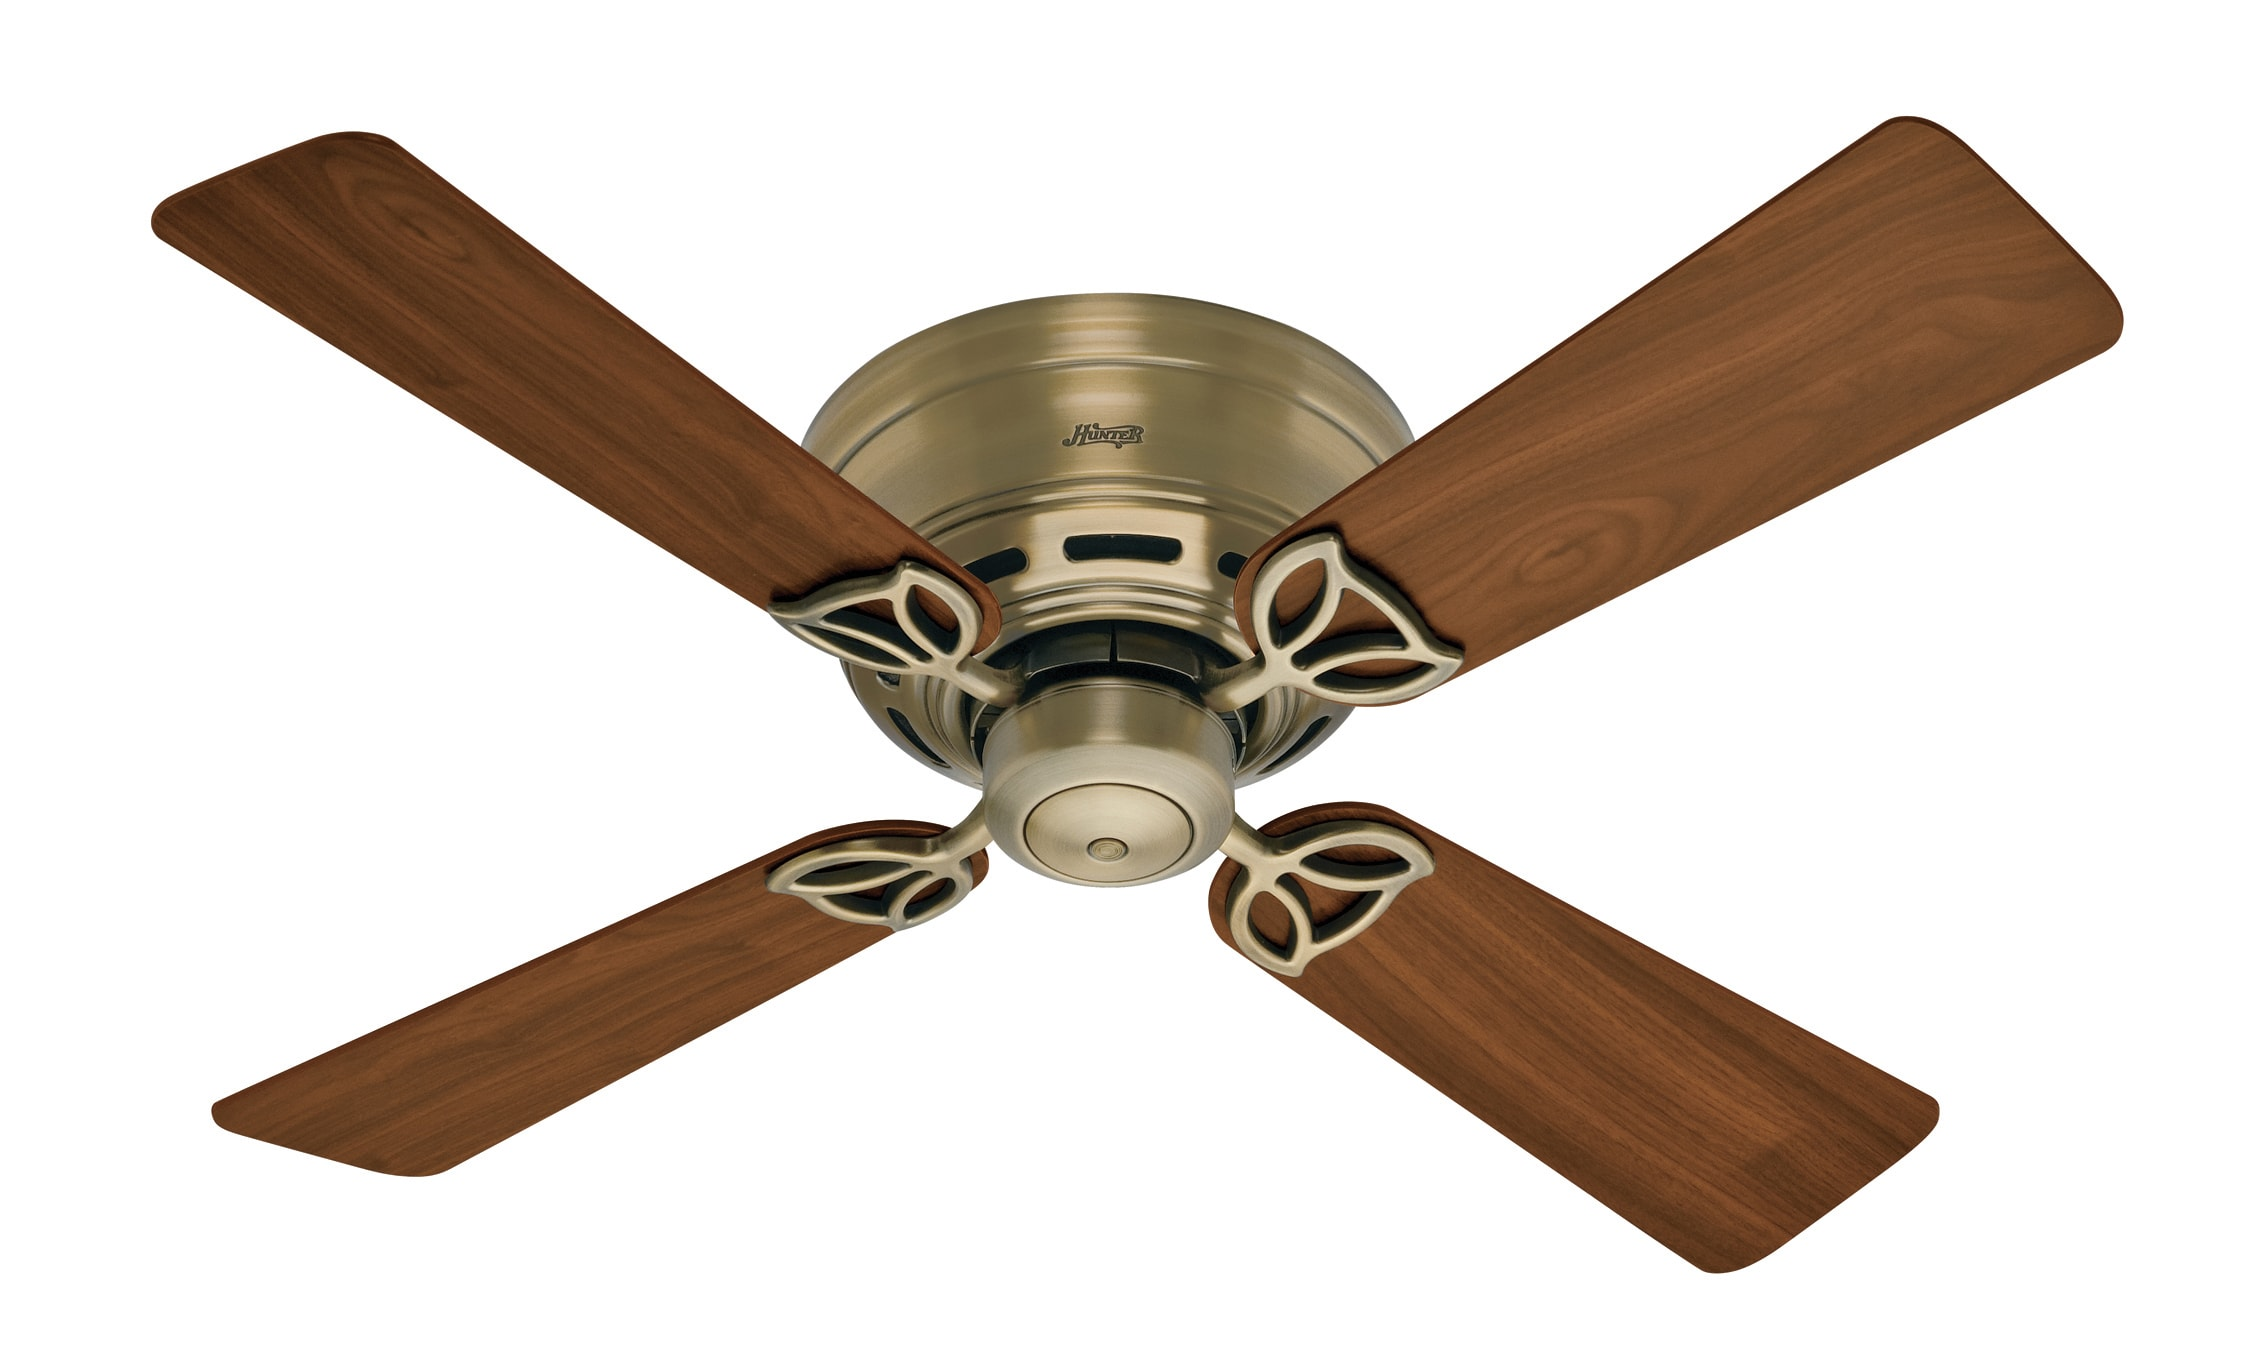 Hunter 23860 Antique Brass 42 Low Profile Iii Ceiling Fan Blades Included Lightingdirect Com